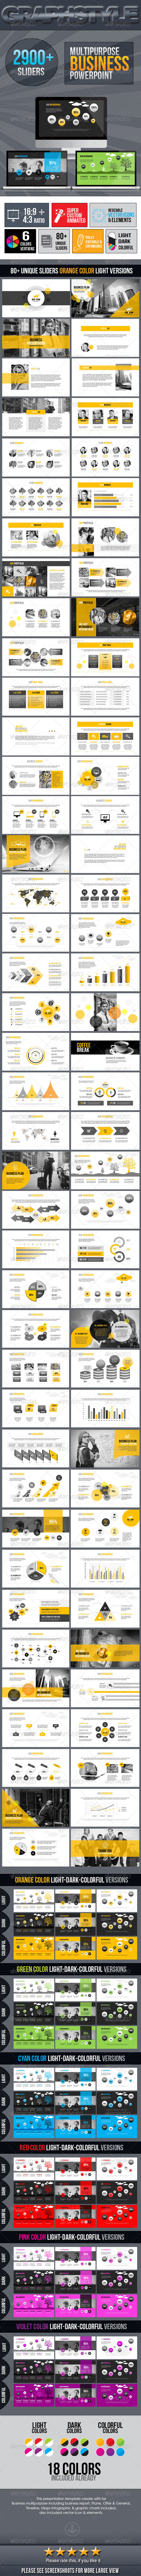 GraphicRiver Exrow Business PowerPoint 8145191